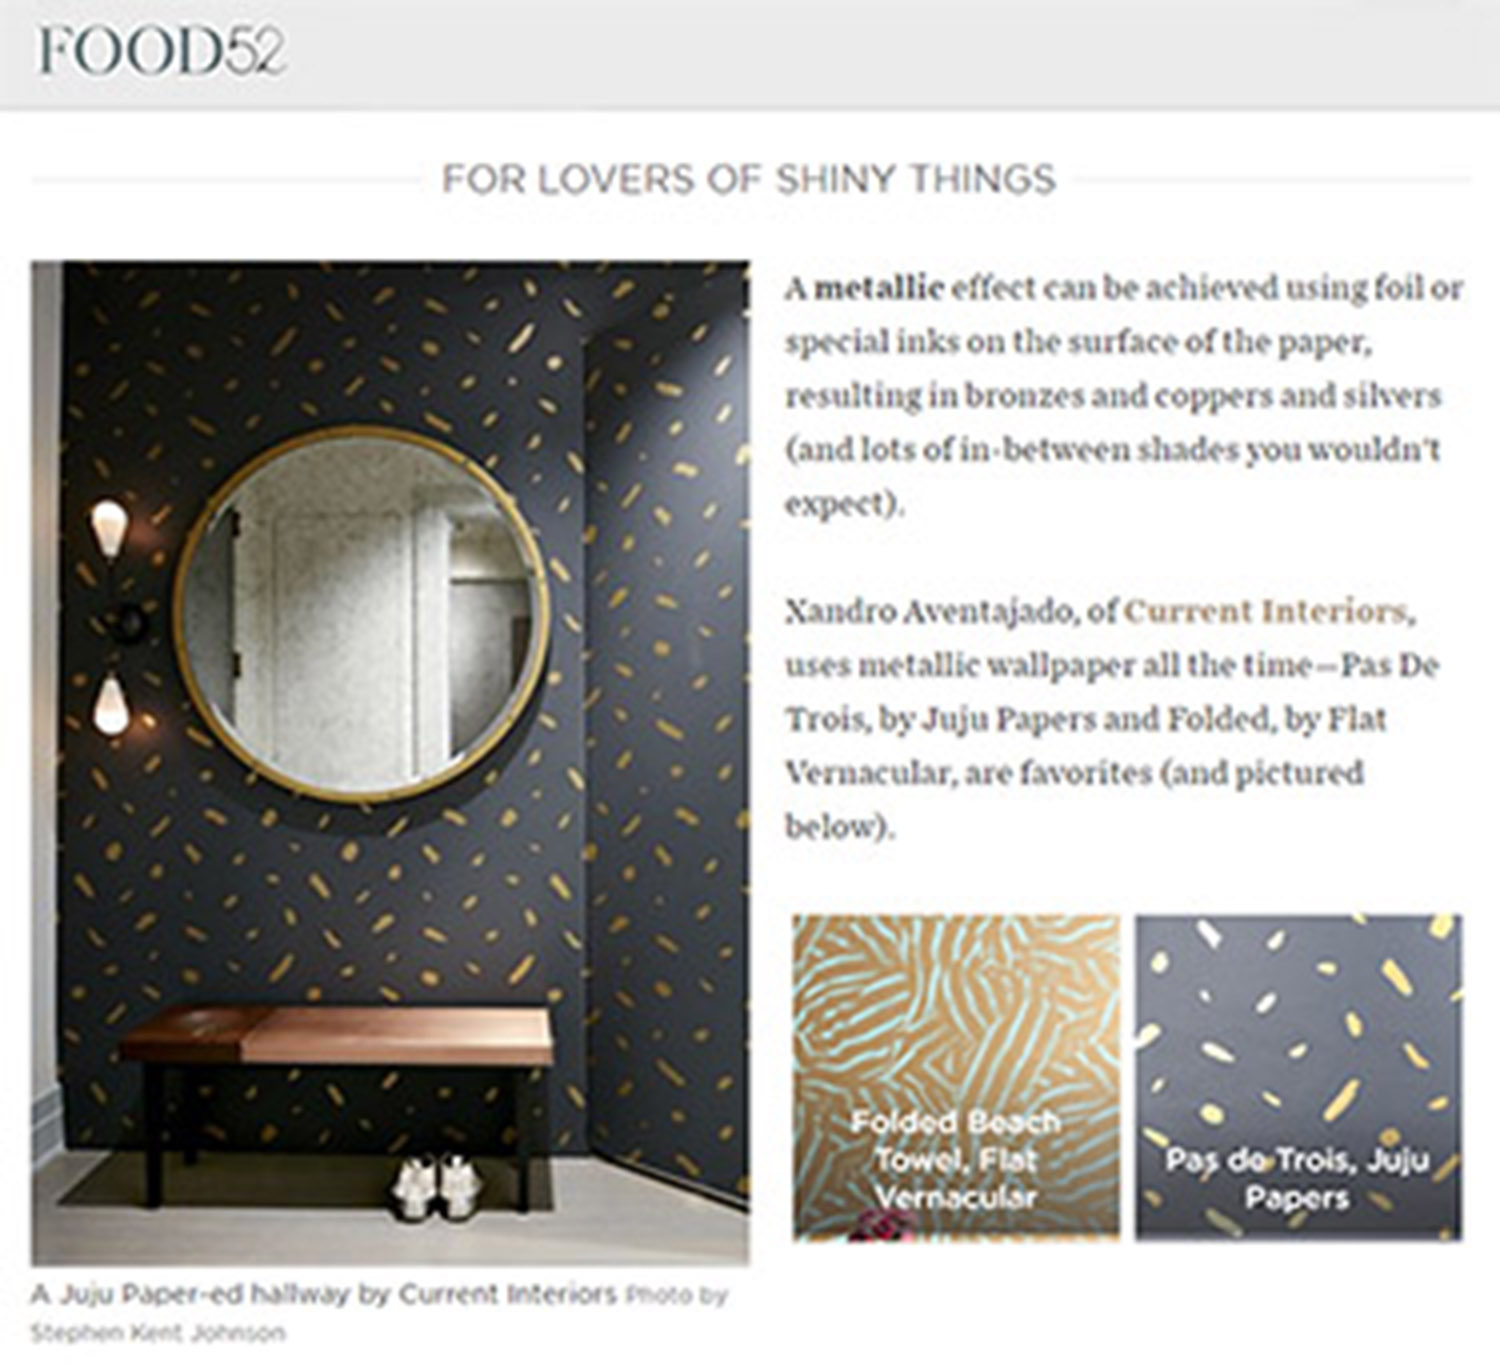 - Food52March, 2017...Xandro Aventajado, of Current Interiors, uses metallic wallpaper all the time—Pas De Trois, by Juju Papers and Folded, by Flat Vernacular, are favorites.